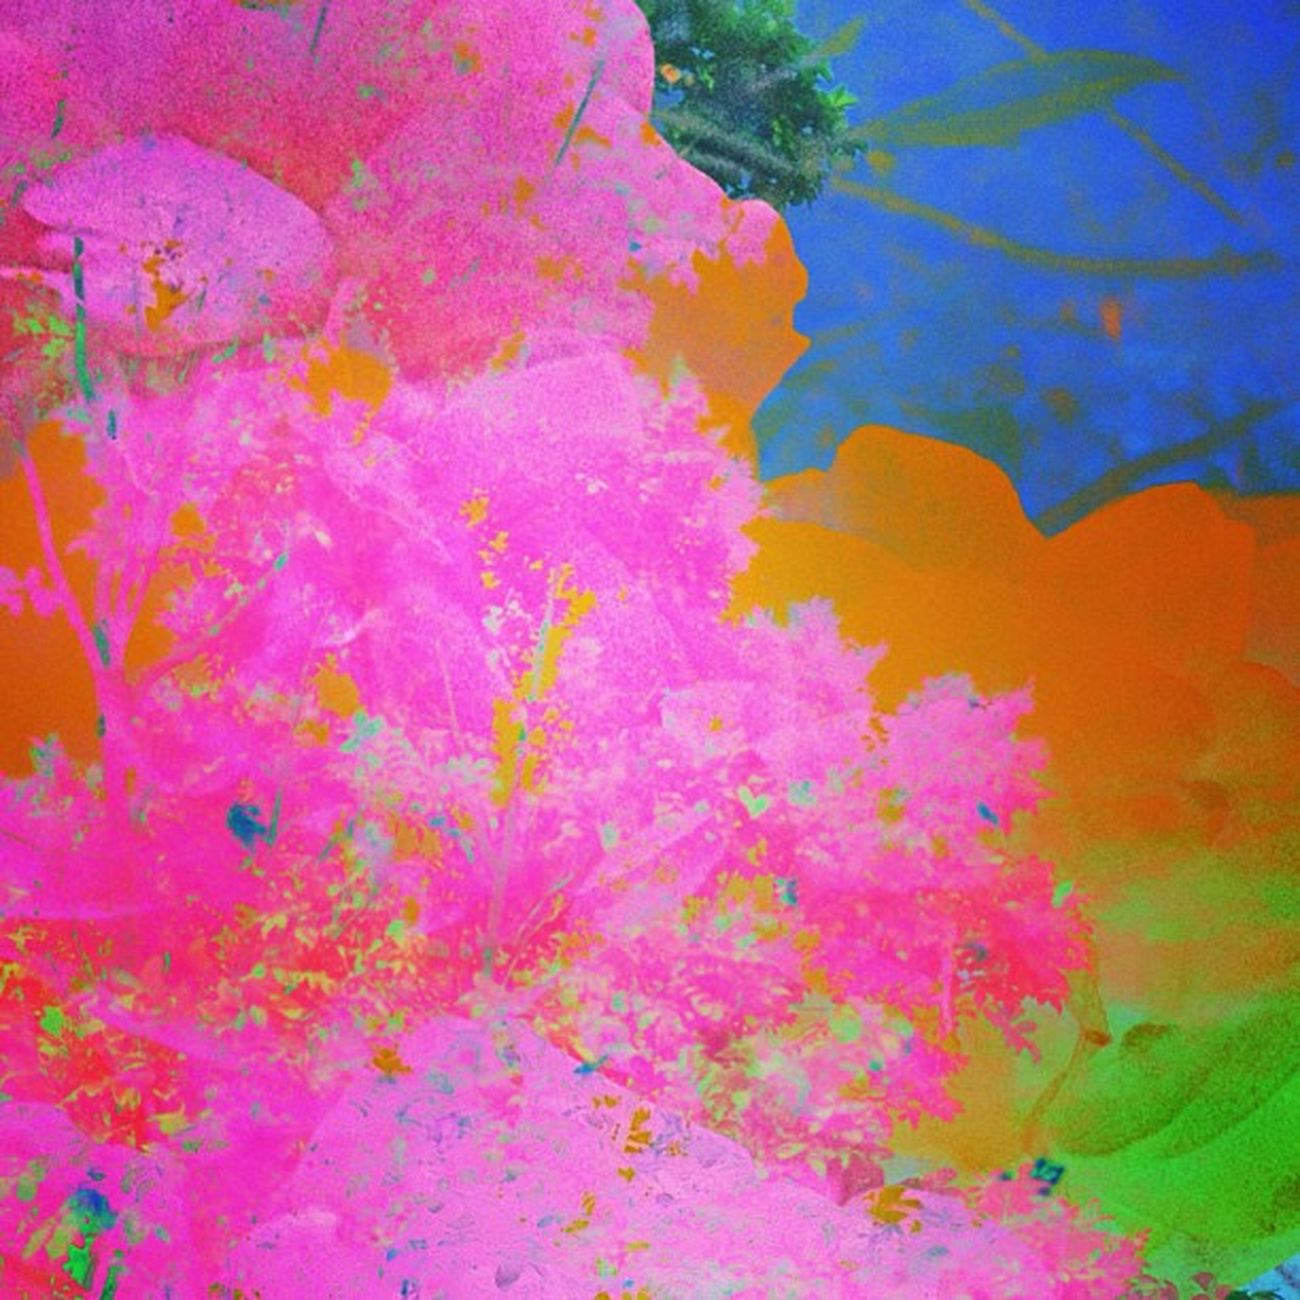 The Harvesting of Fairy Dust Ig_captures Happycolortrip Abstracto Coloronroids All_shots Dhexpose StayABSTRACT Ace_ Abstractart Deadlydivas Gang_family Ig_one Editjunky Icatching Mobileartistry Femme_elite Instauno Weareinheaven Igsg You_nique_edits Bd Mi55flowerz Abstracters_anonymous Edit_fever Abstract_buff Abstractobsession Instaabstract